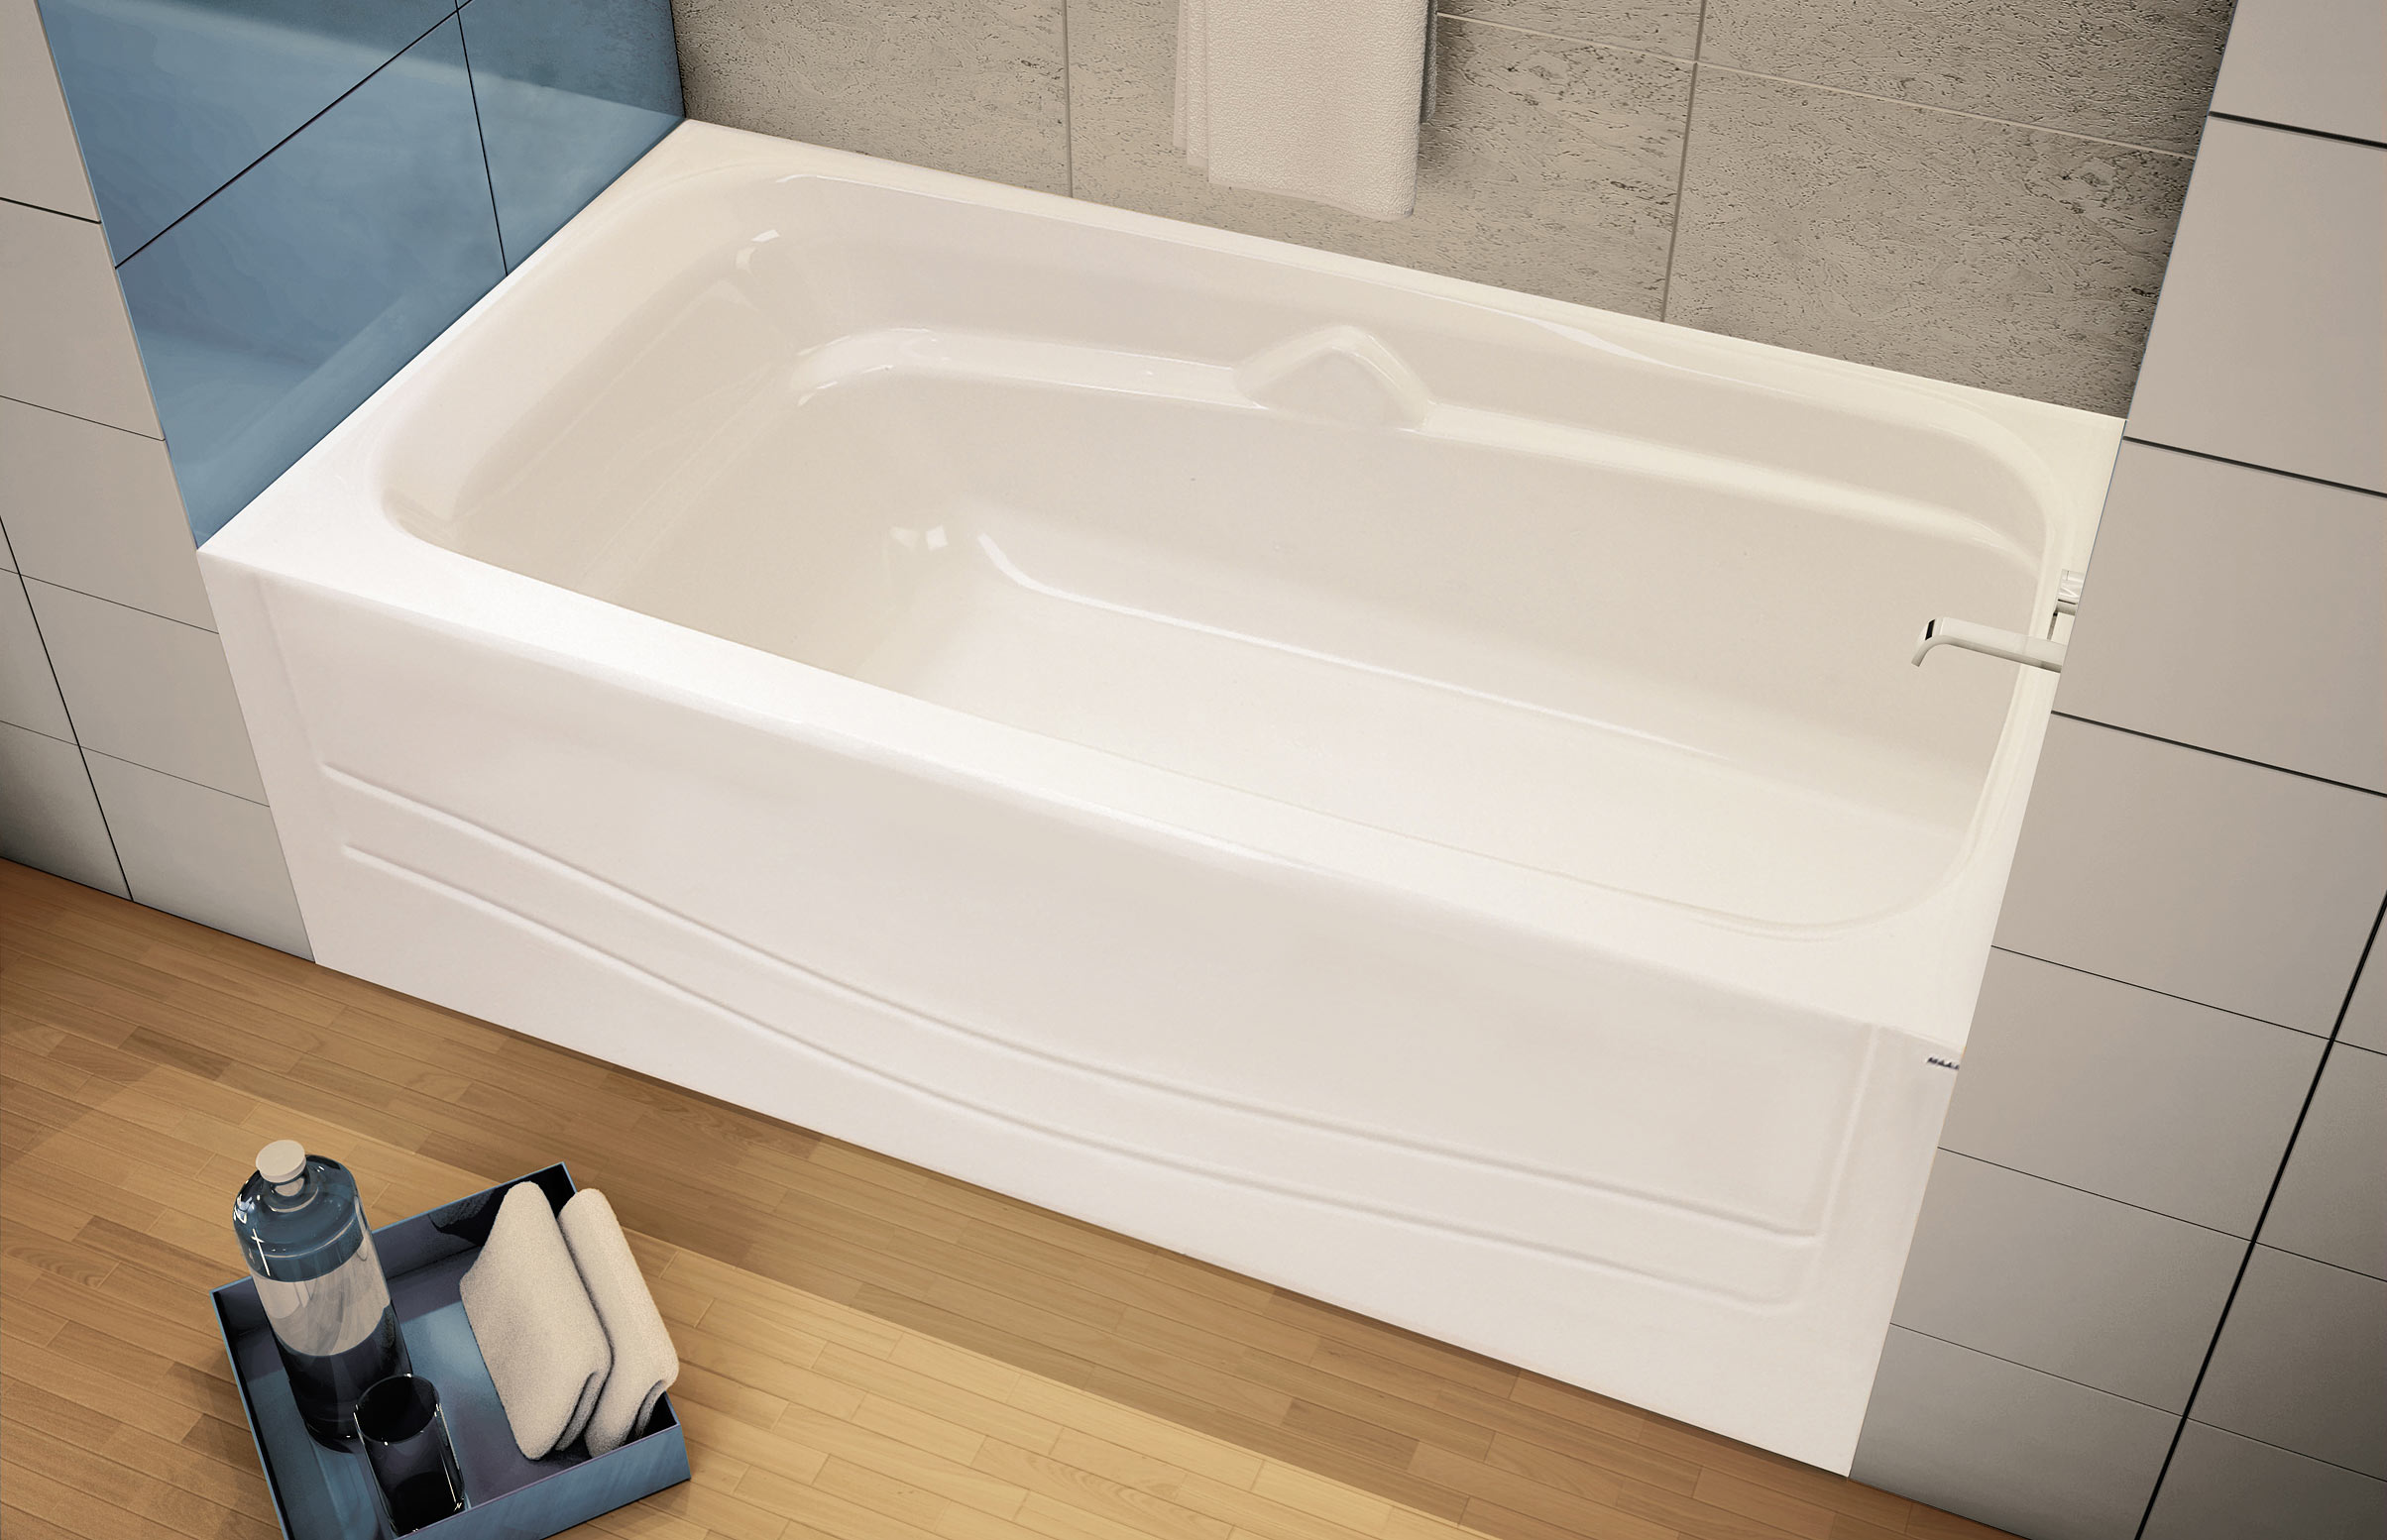 Maax Aker Tubs P33 About Remodel Creative Inspiration Interior Home ...